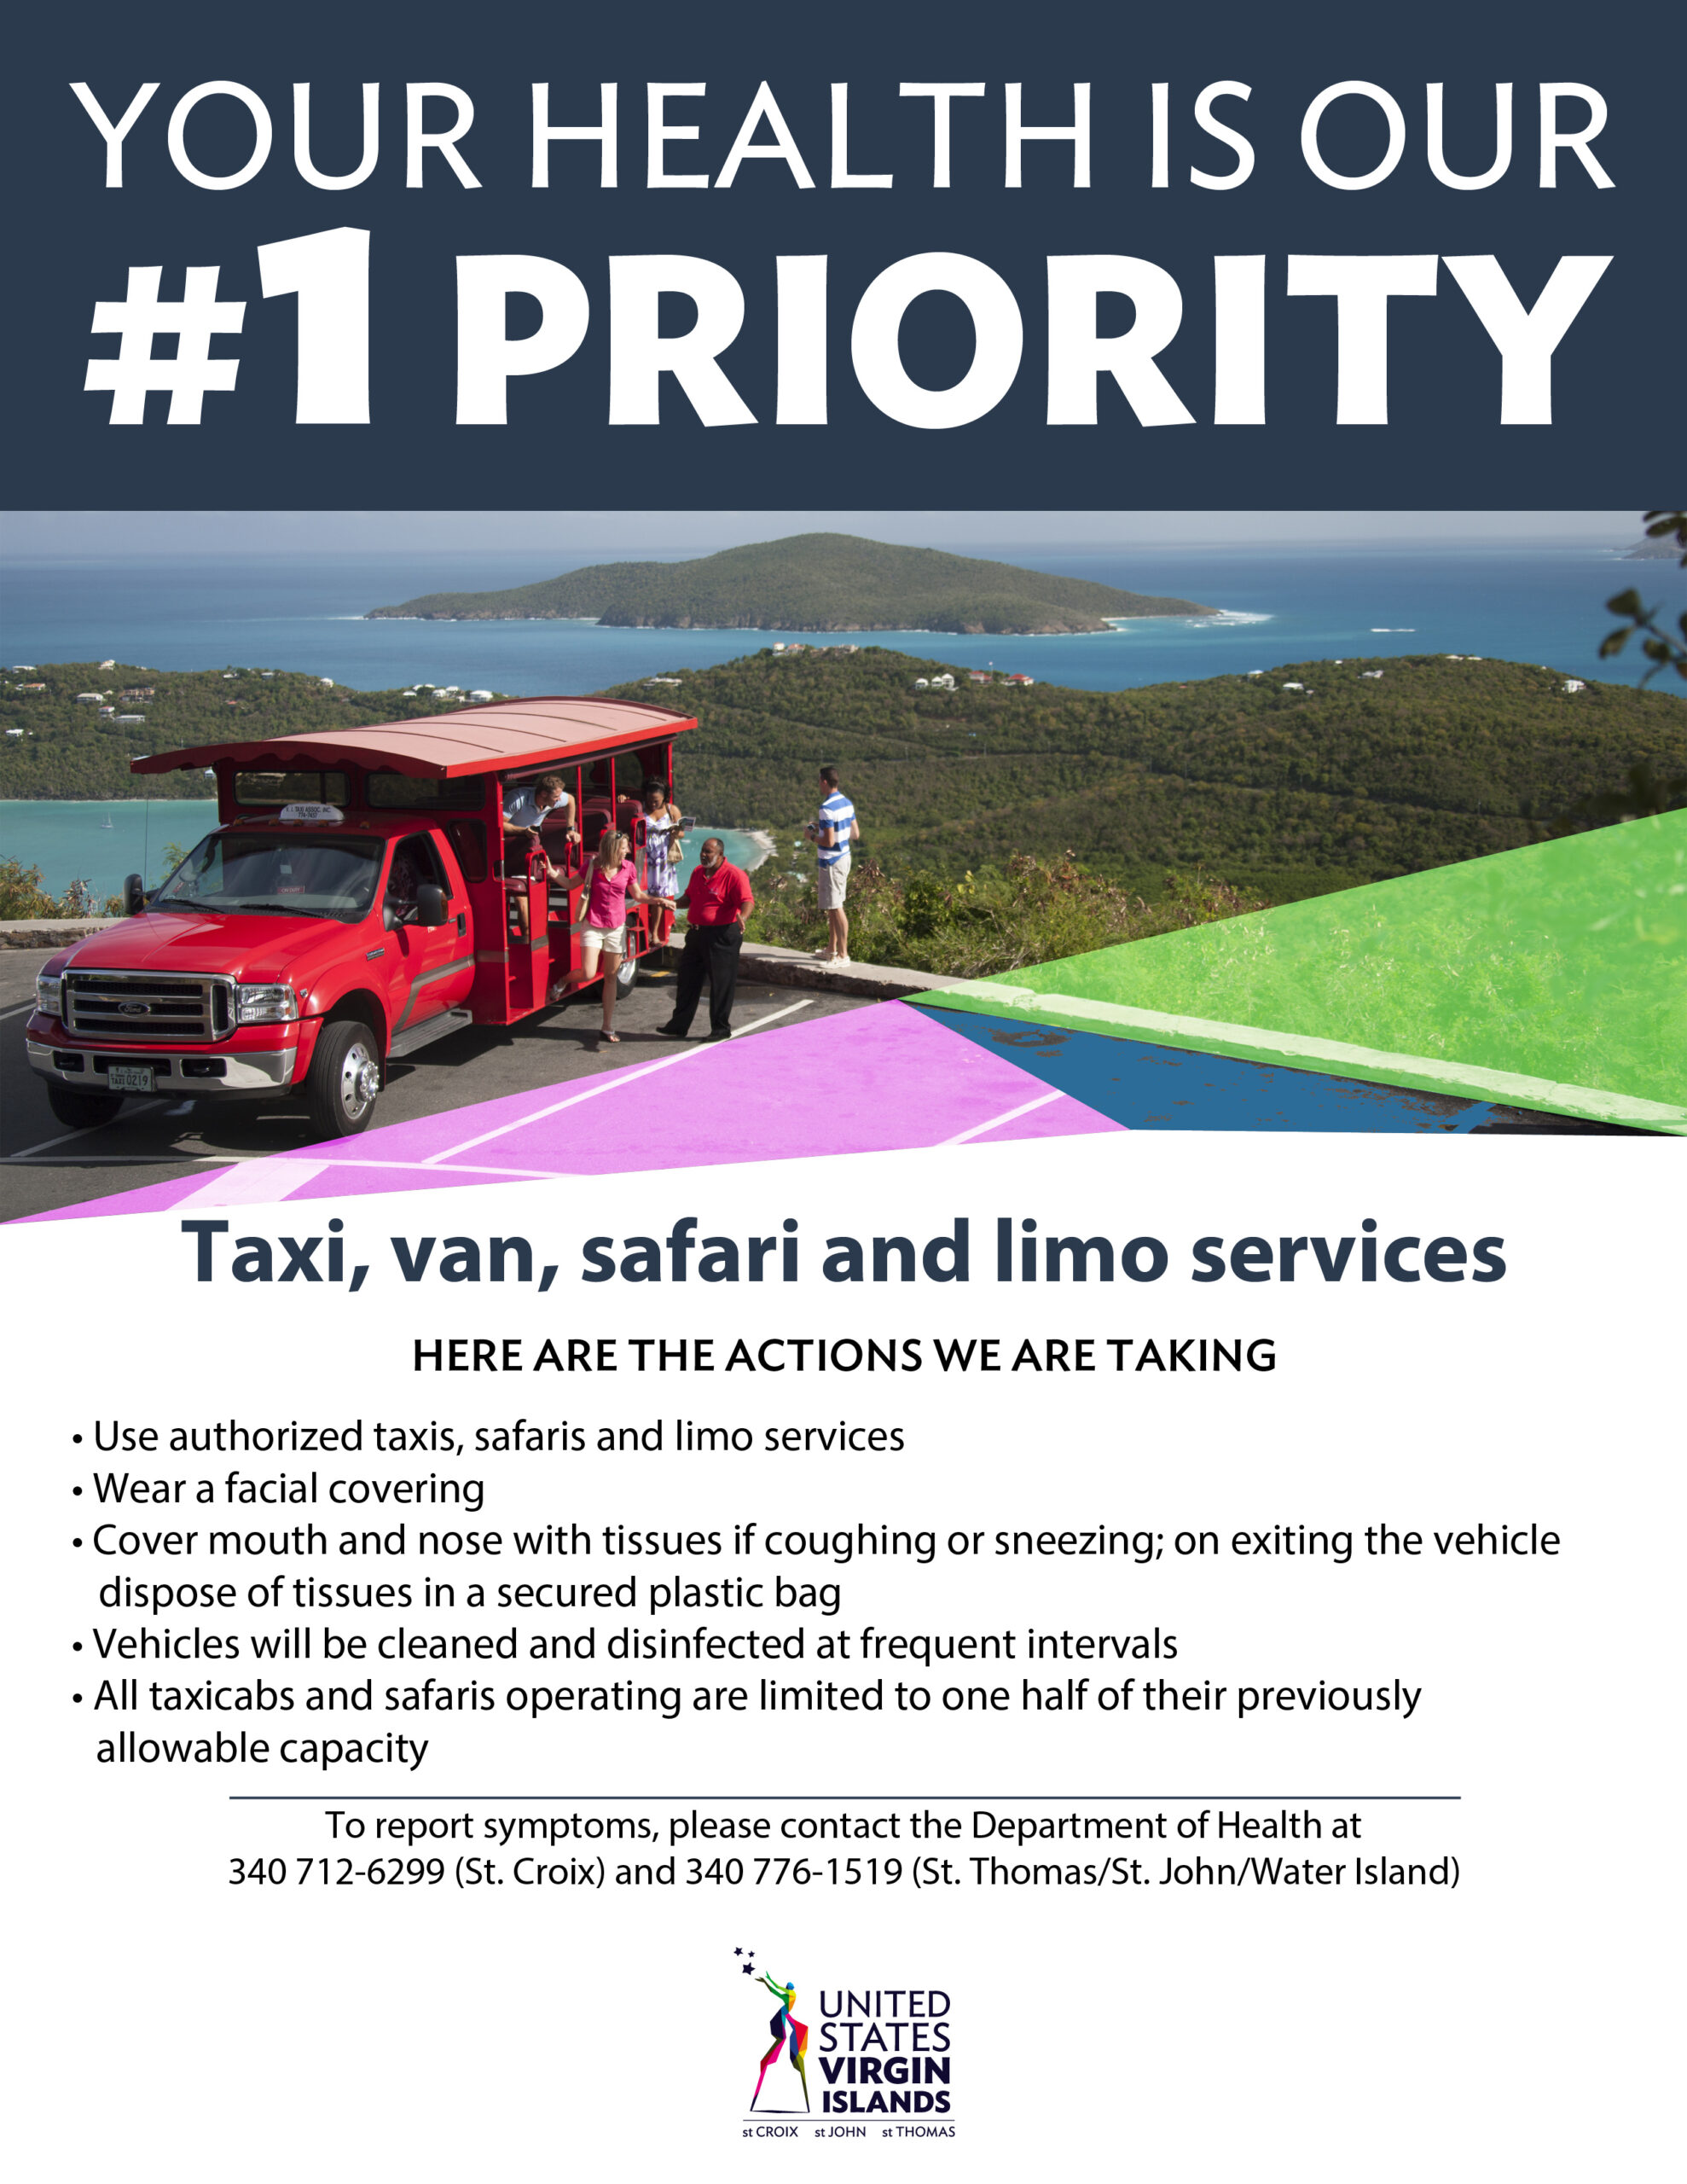 Taxi, Van, Safari, and Limo Services Safety Guidelines